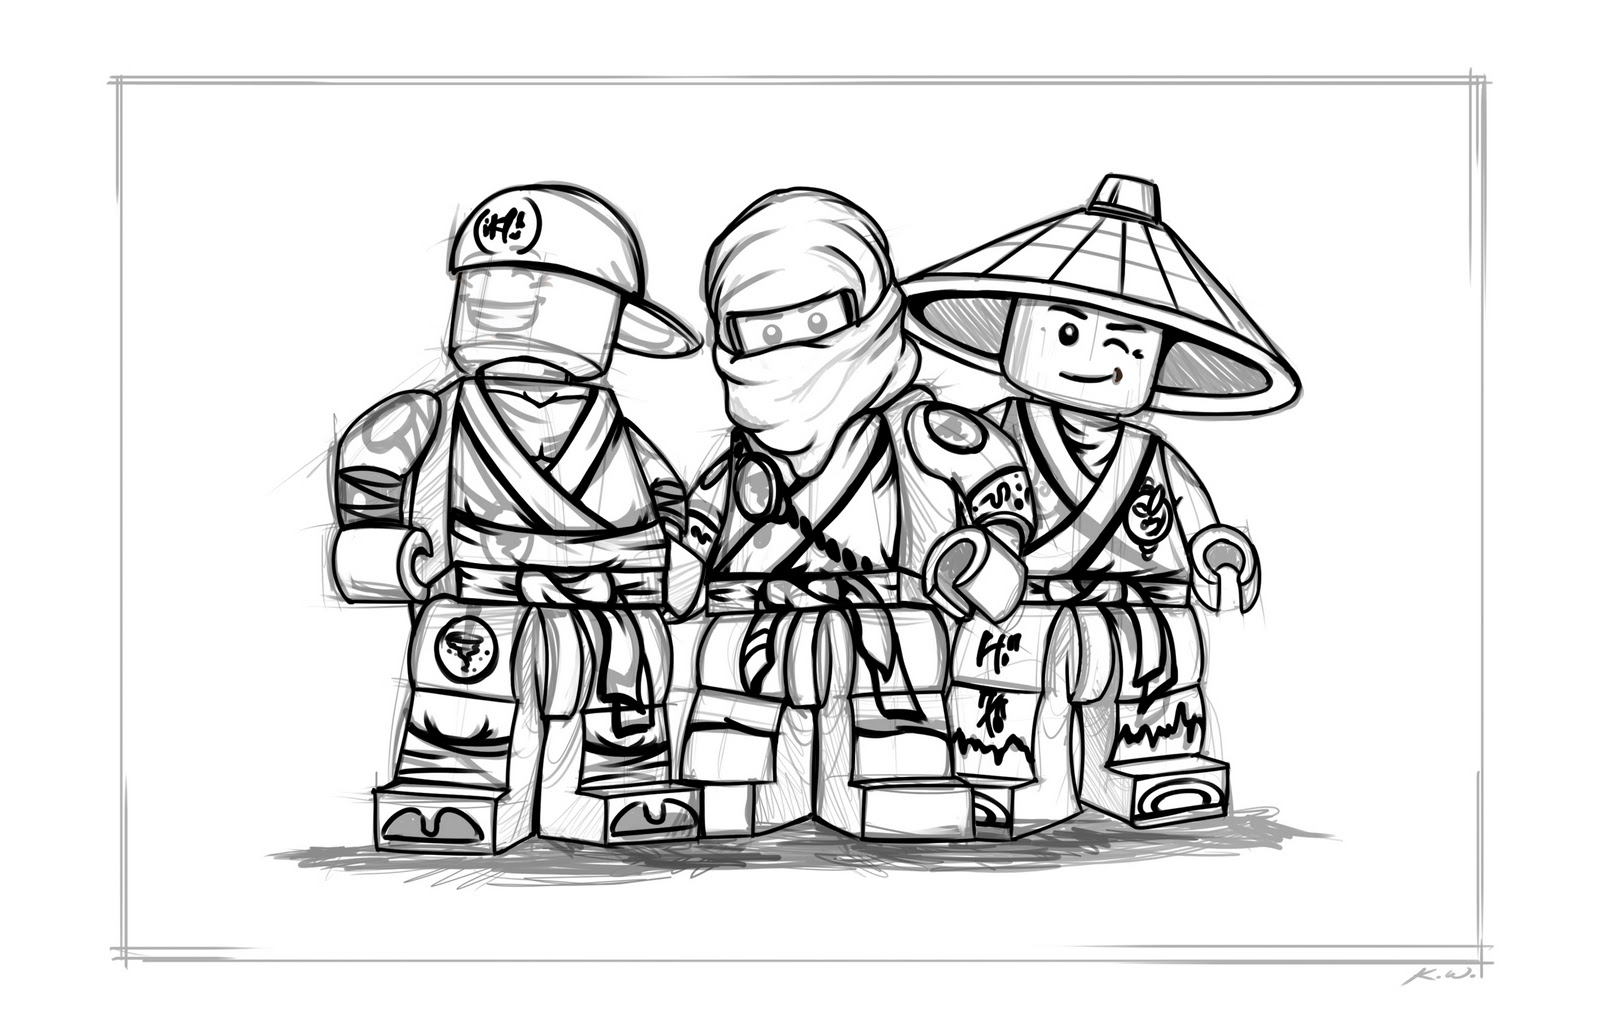 lego ninjago colouring pictures the lego ninjago movie coloring pages to download and ninjago lego colouring pictures